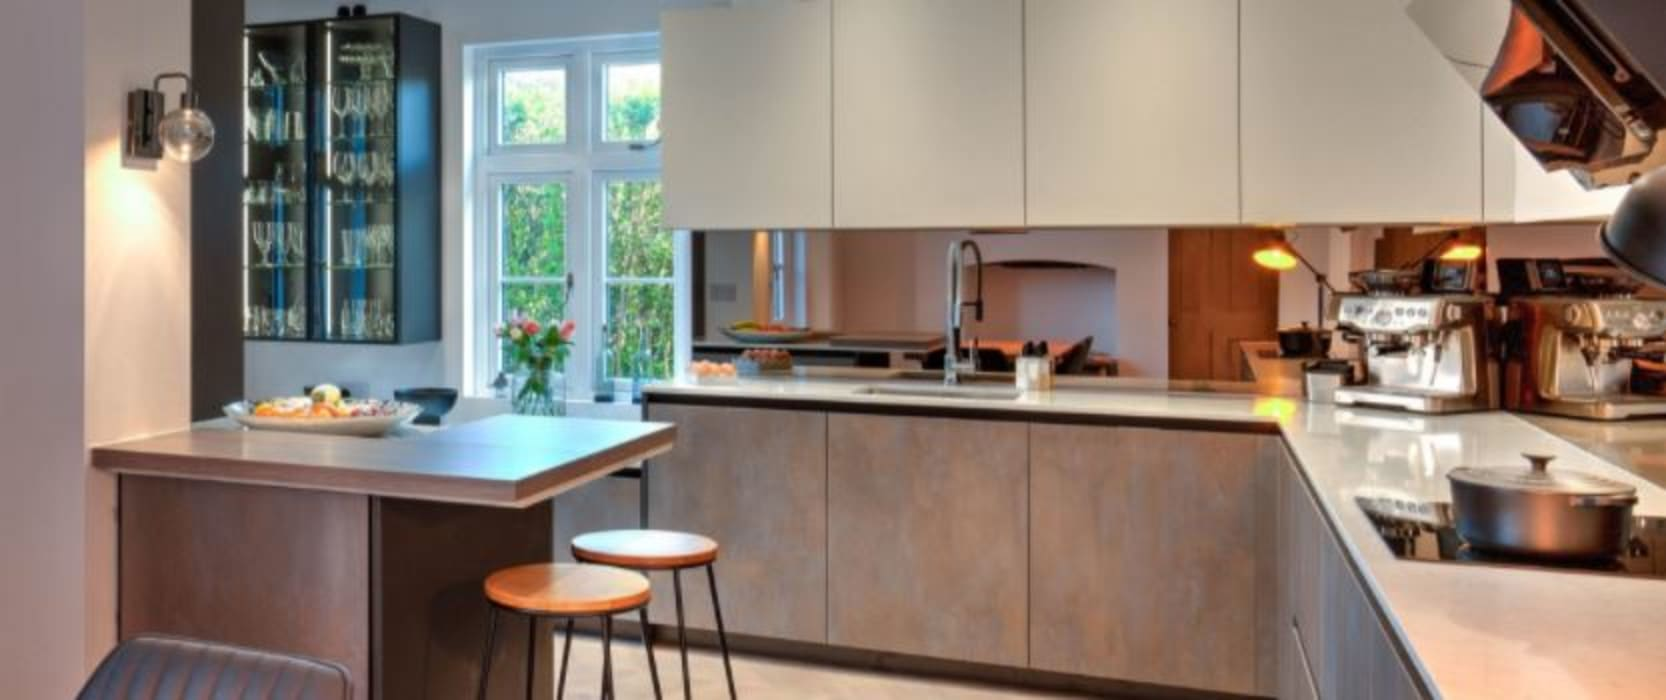 Kavanagh Designs Showroom Kavanagh Designs Kitchen units